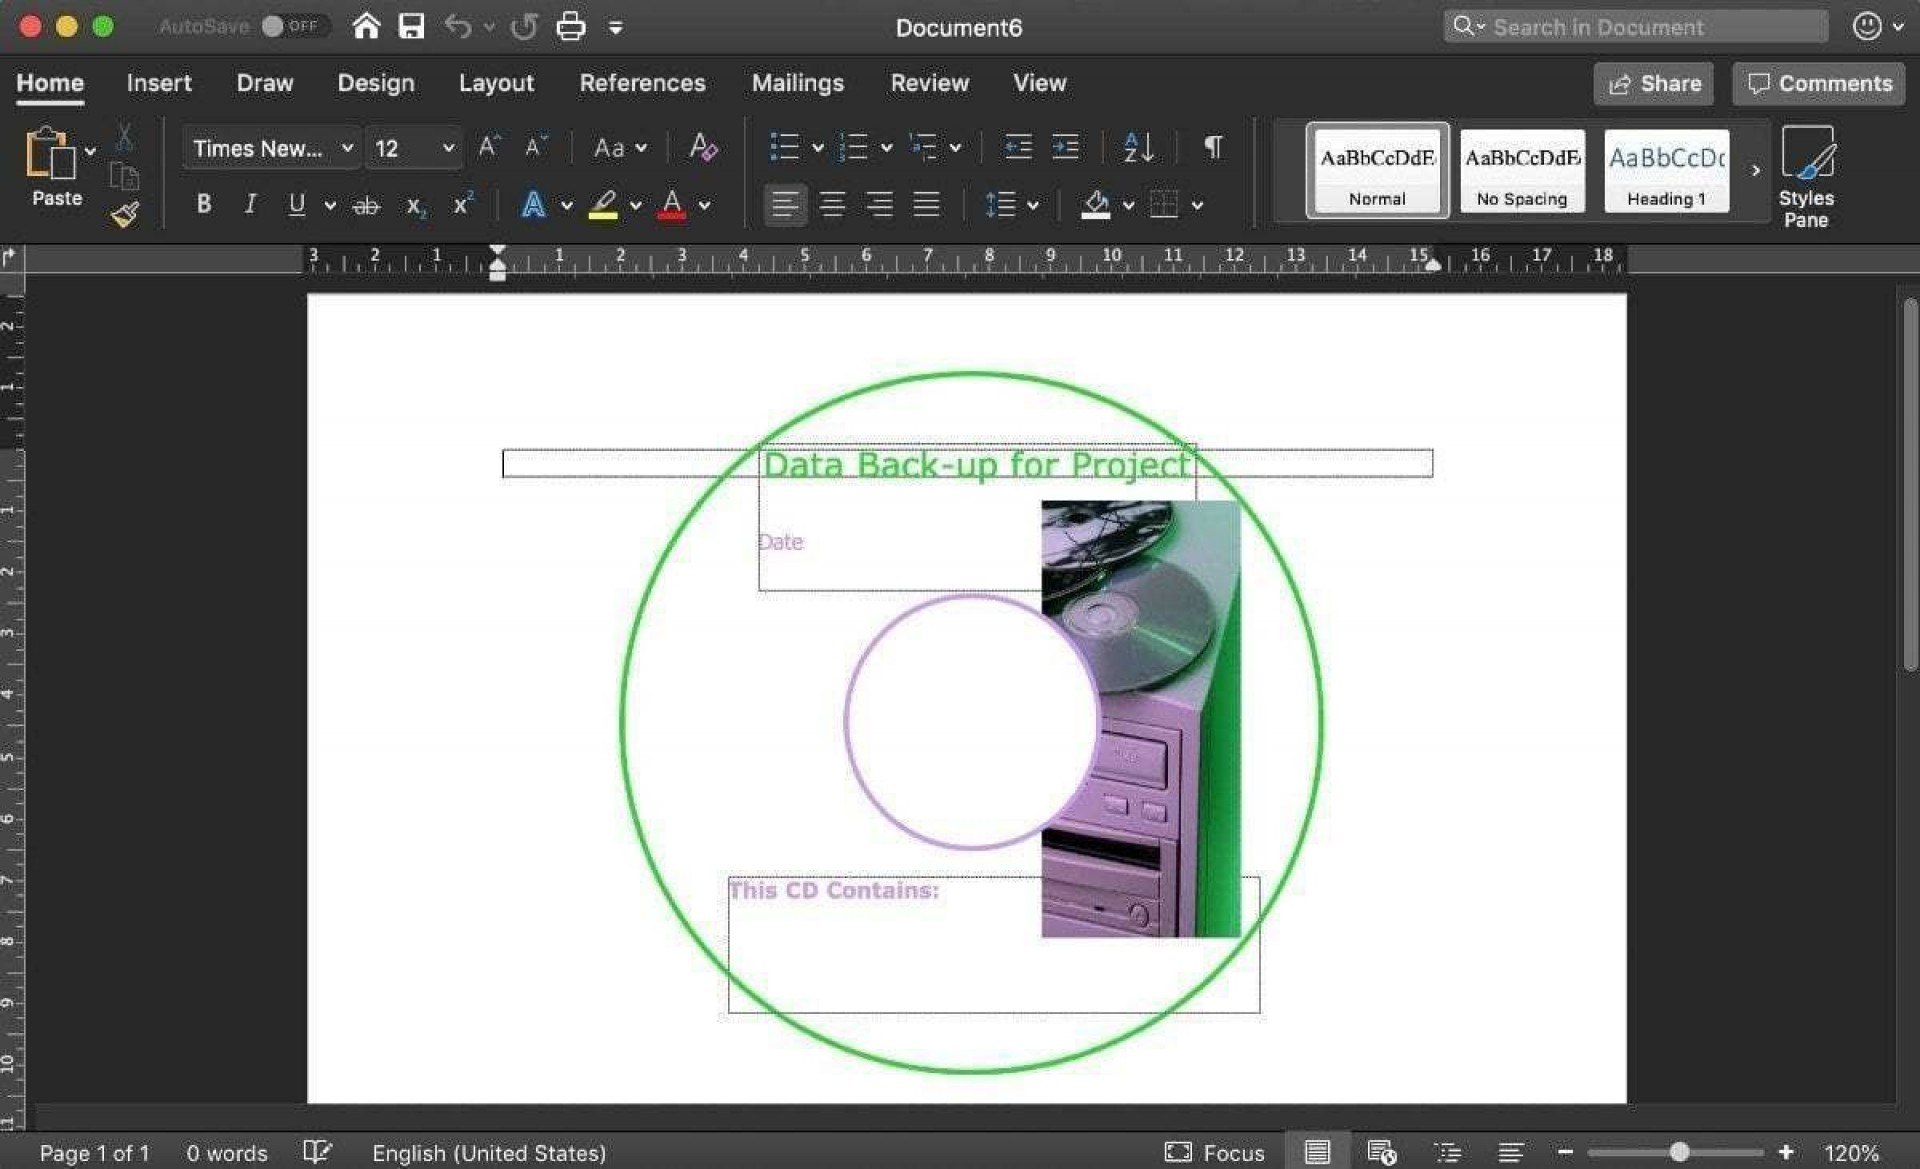 000 Simple Cd Label Template Word 2010 Photo  Microsoft1920